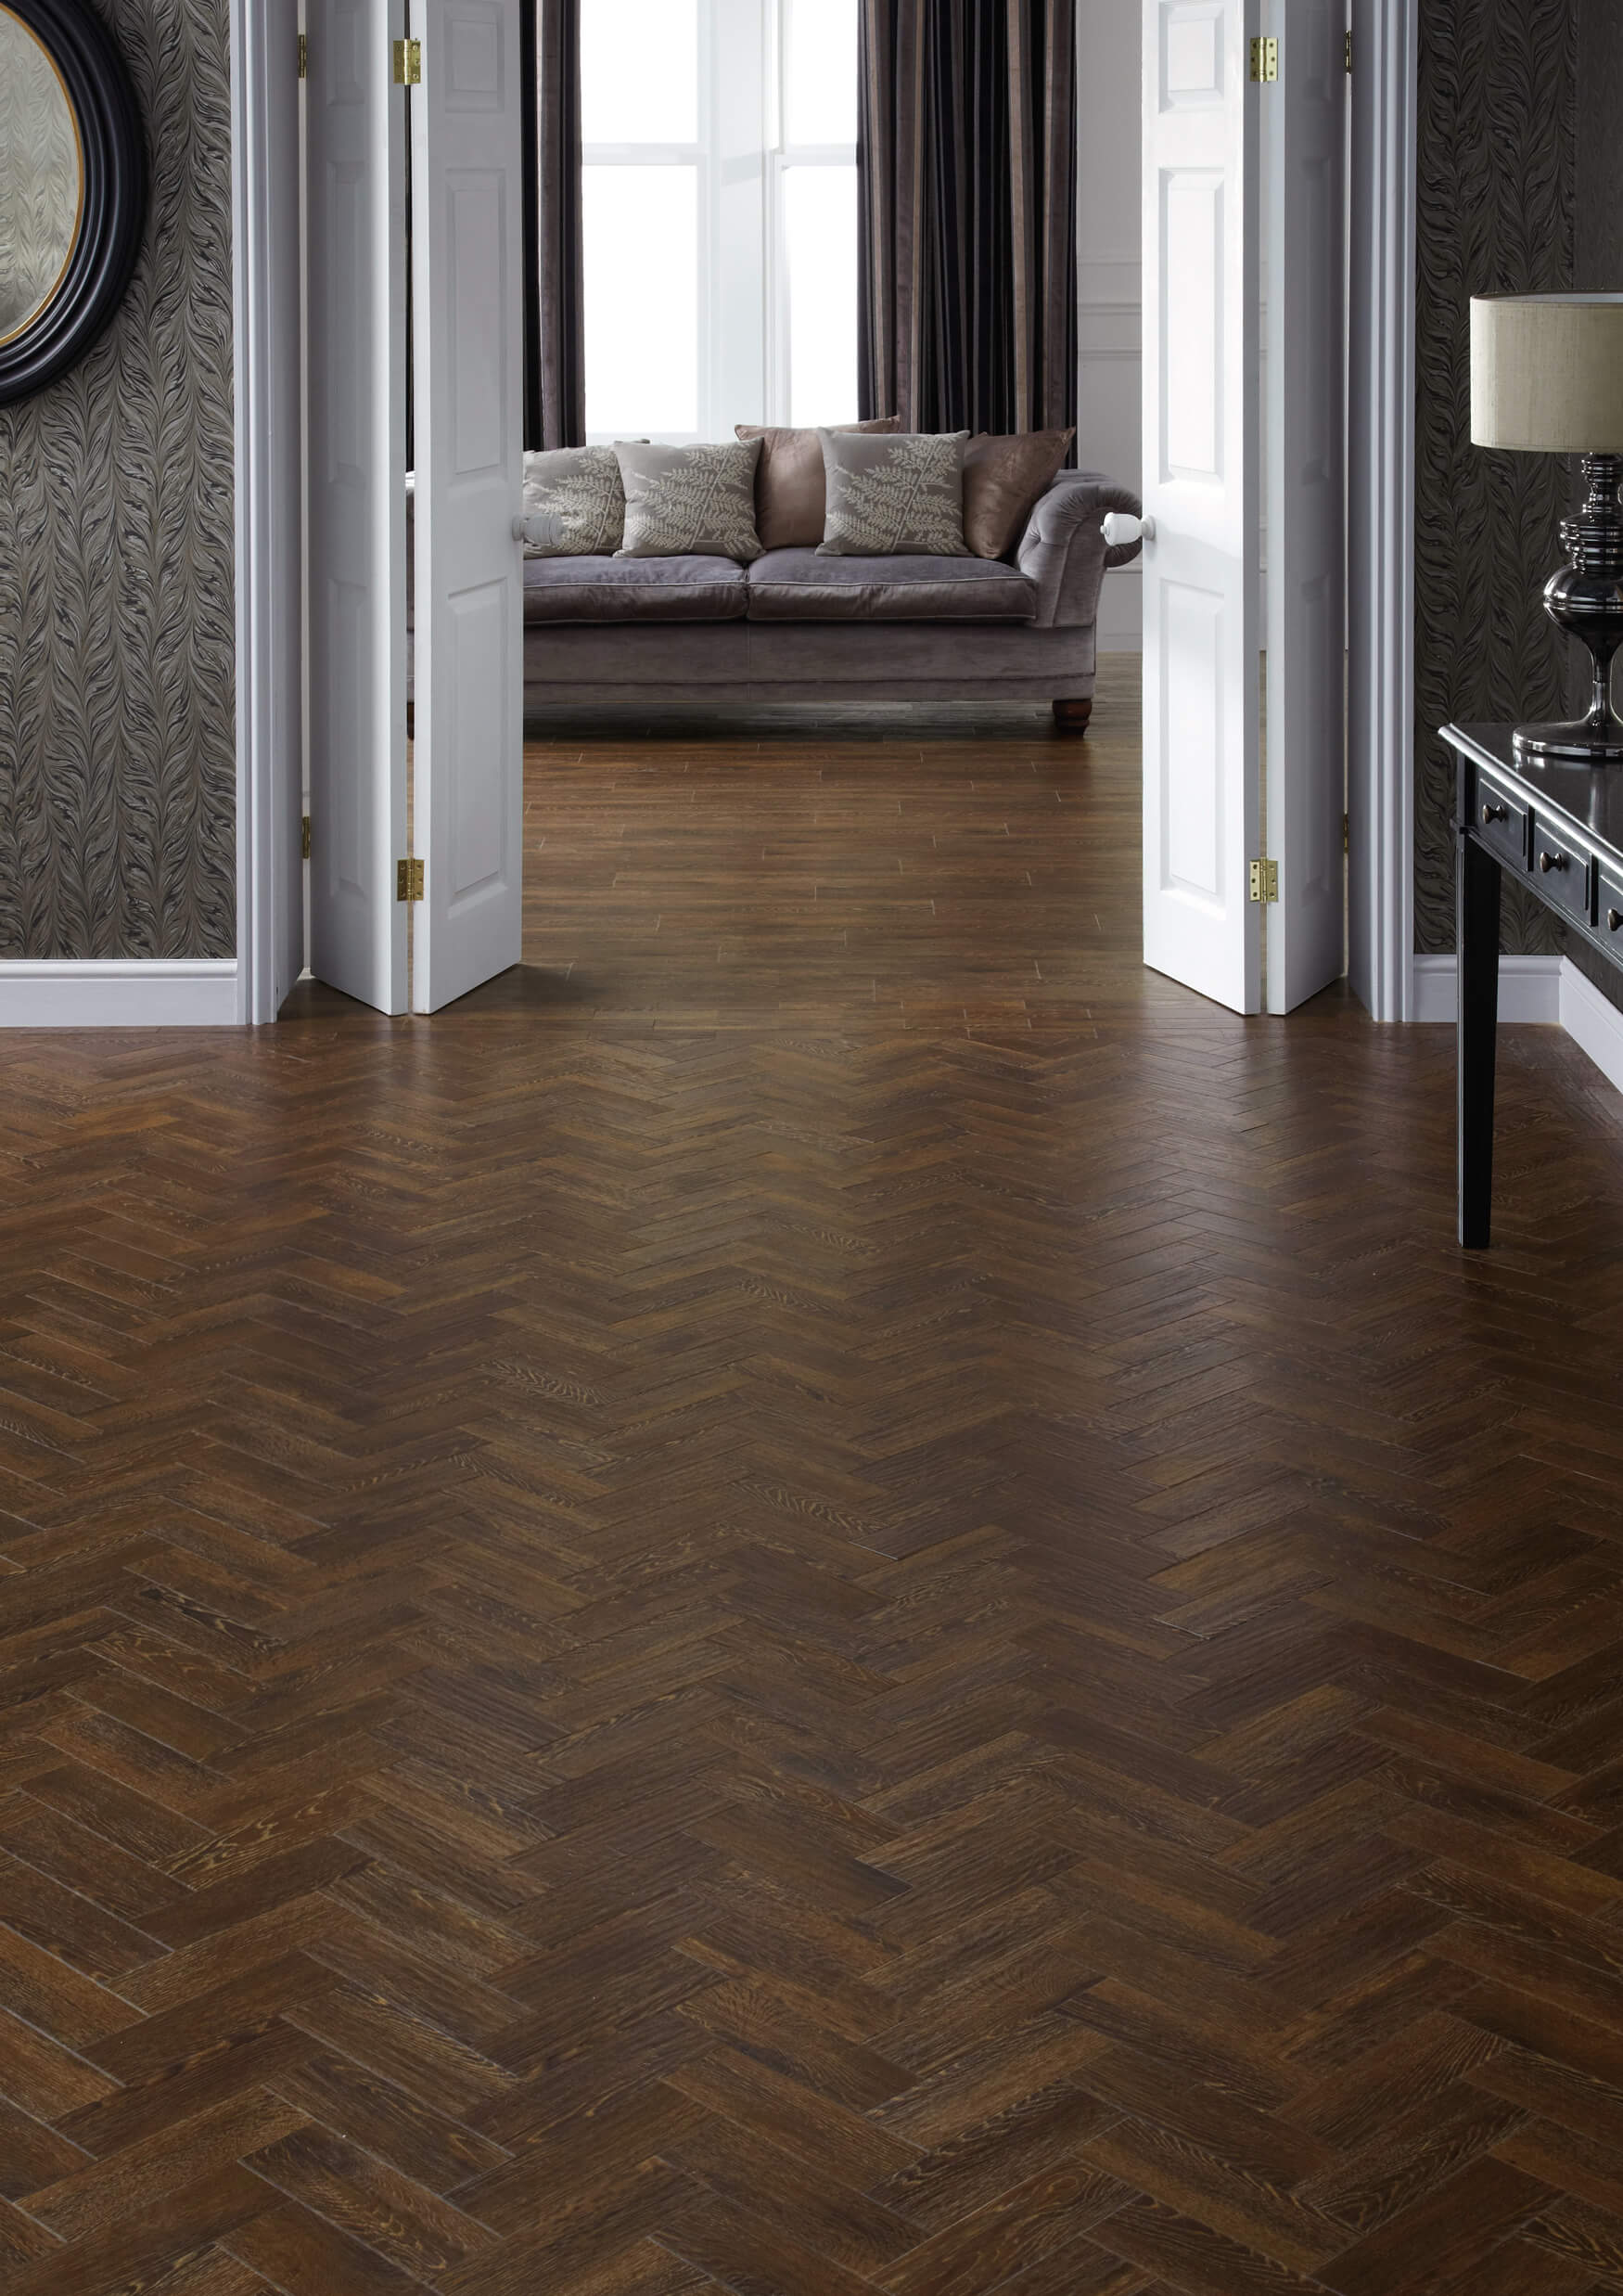 Karndean art select vinyl flooring in sundown oak hc04 for Vinyl flooring companies